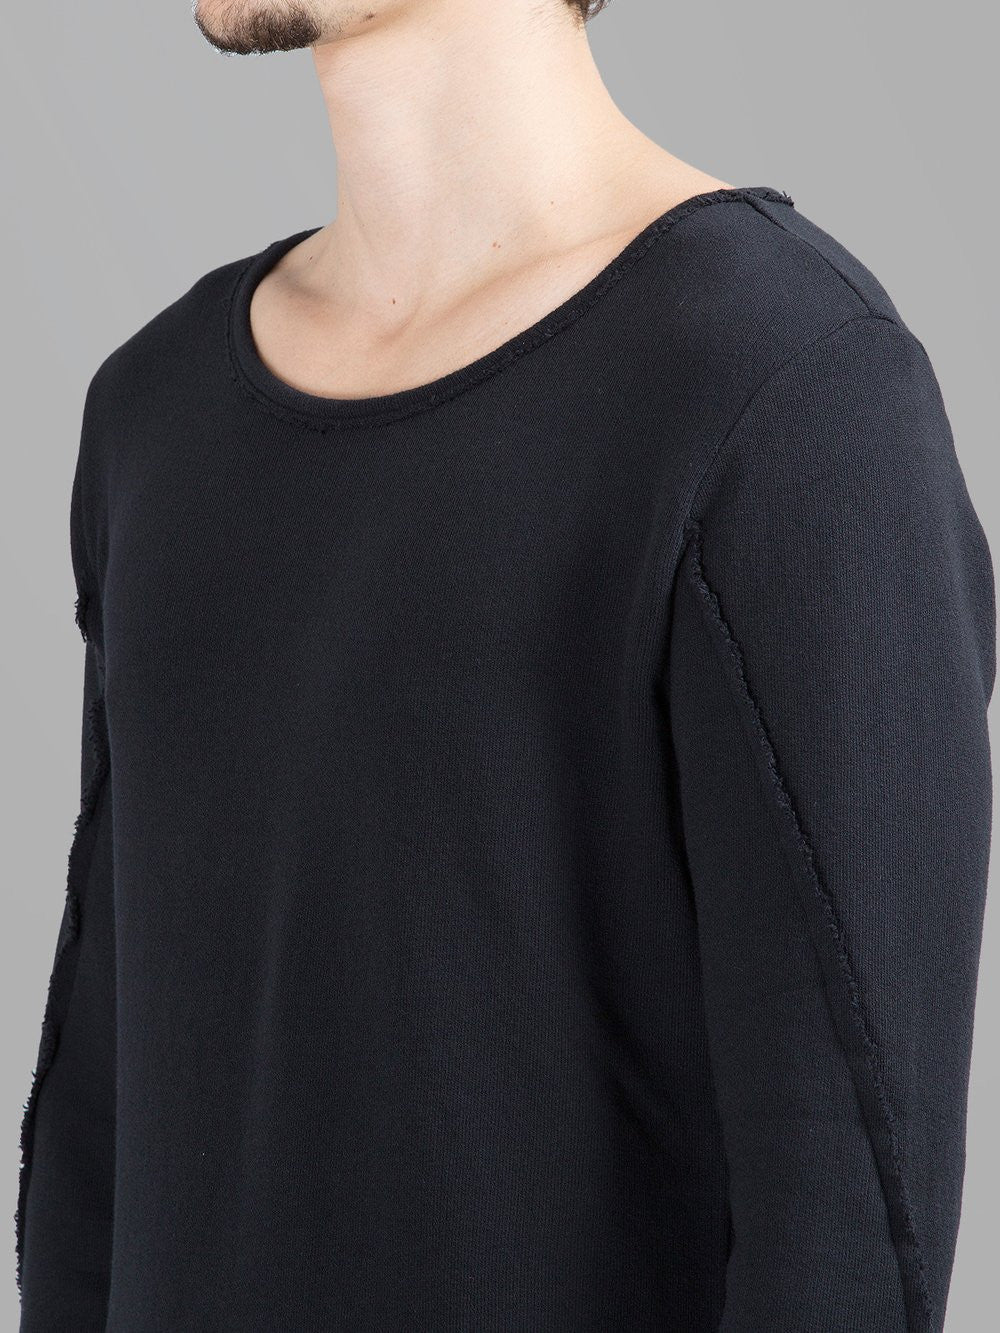 Dark Men's Wide Round Neck Asymmetric Raw Cut Seam Detail Sweaters Hoodie